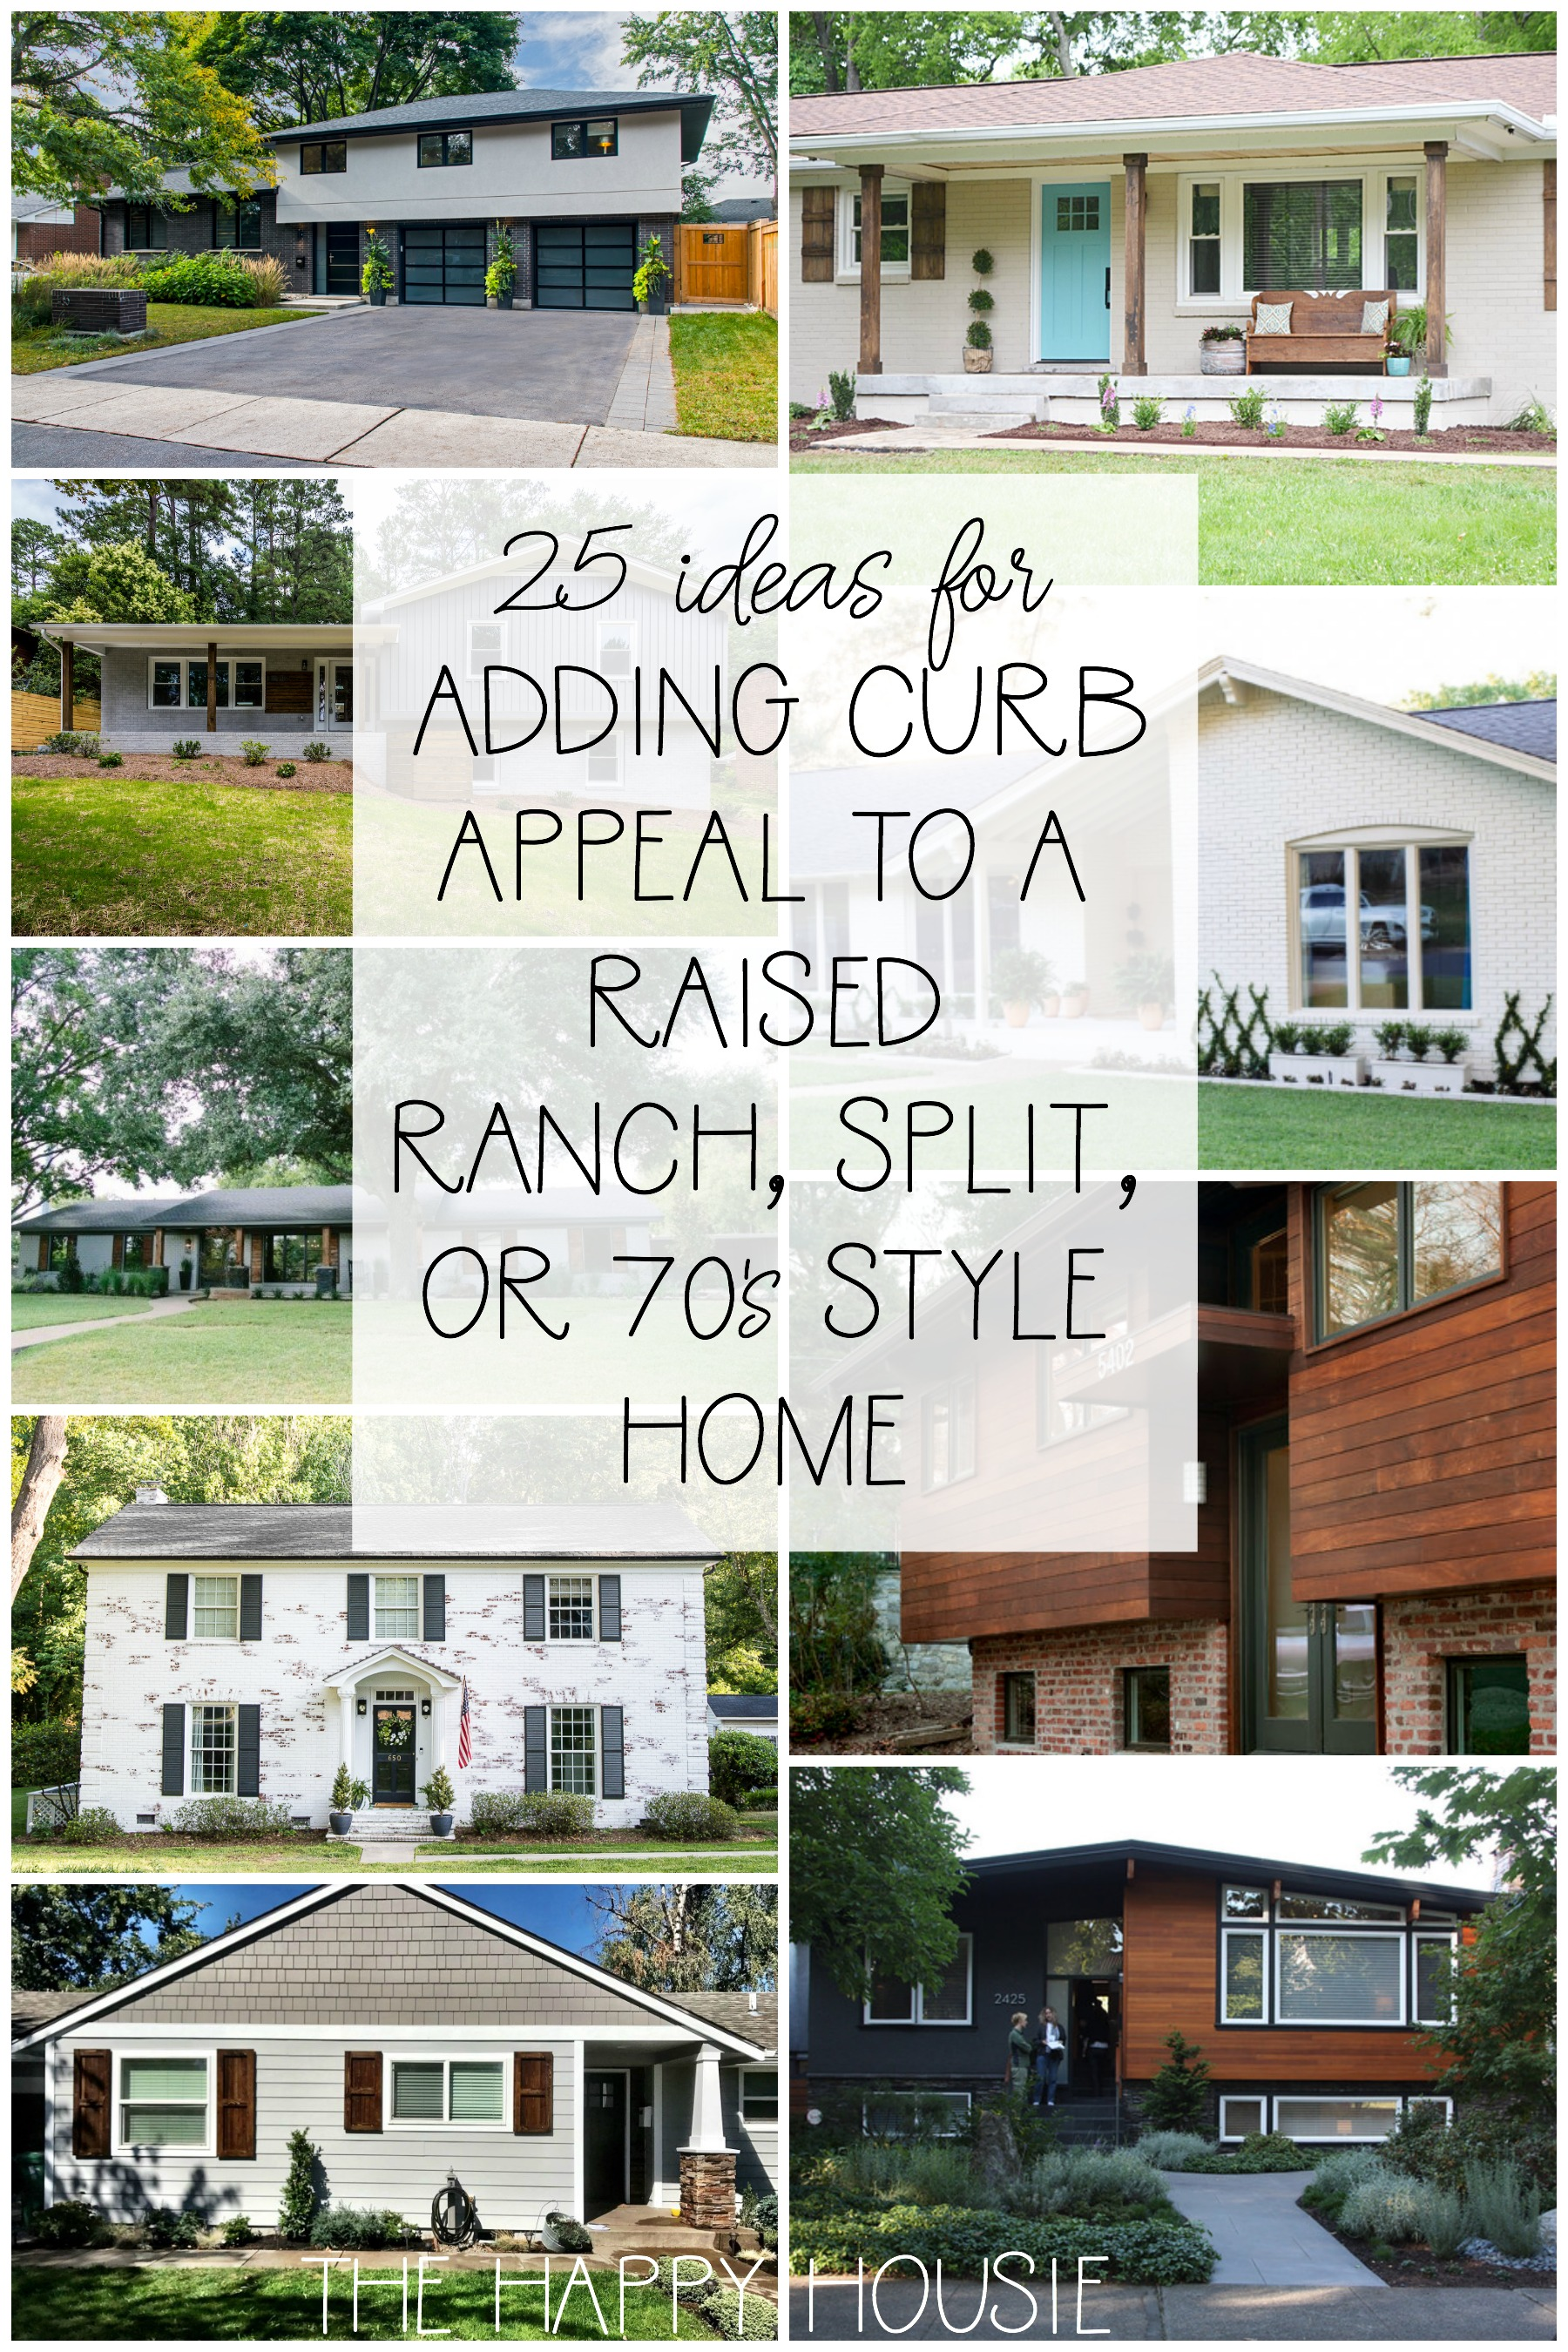 25 Ideas Tips For Adding Curb Appeal To Your Home The